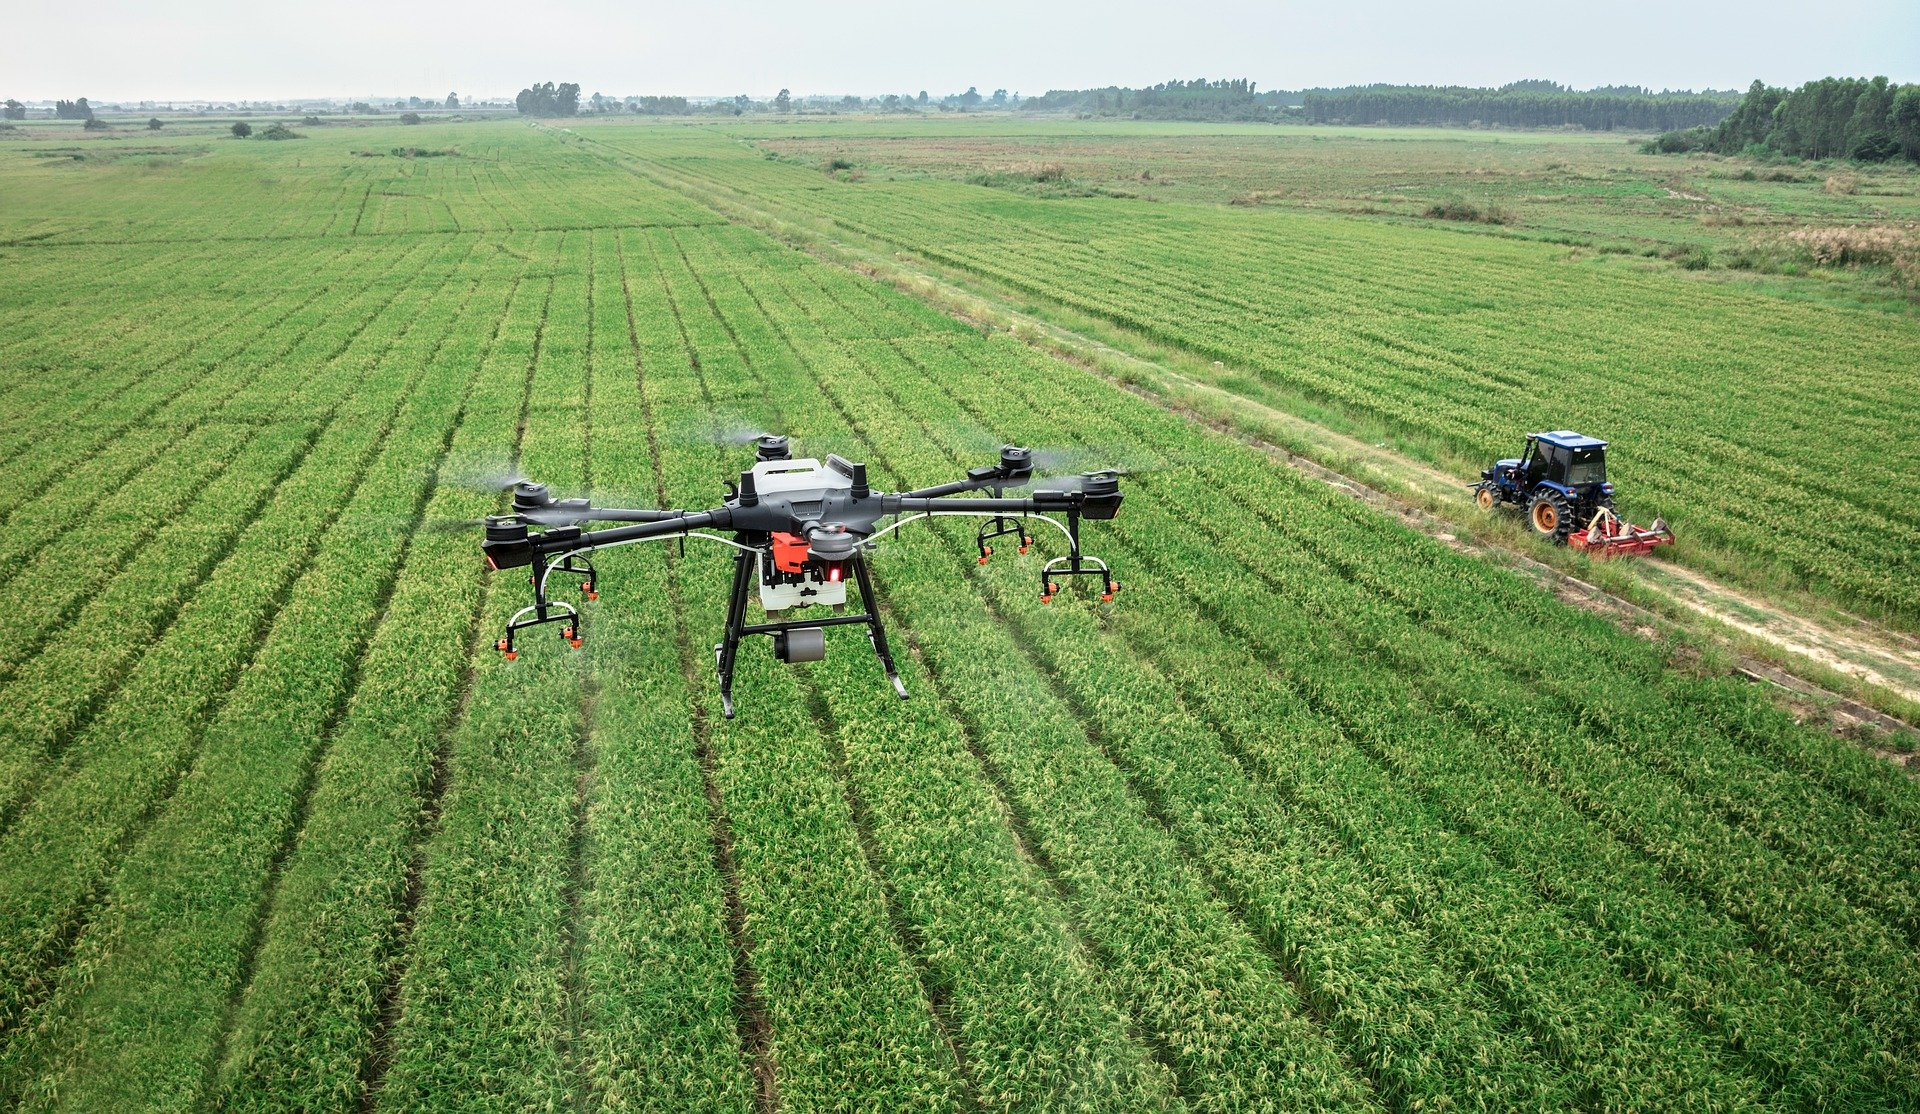 Drones allow farmers to better understand the state of crops.